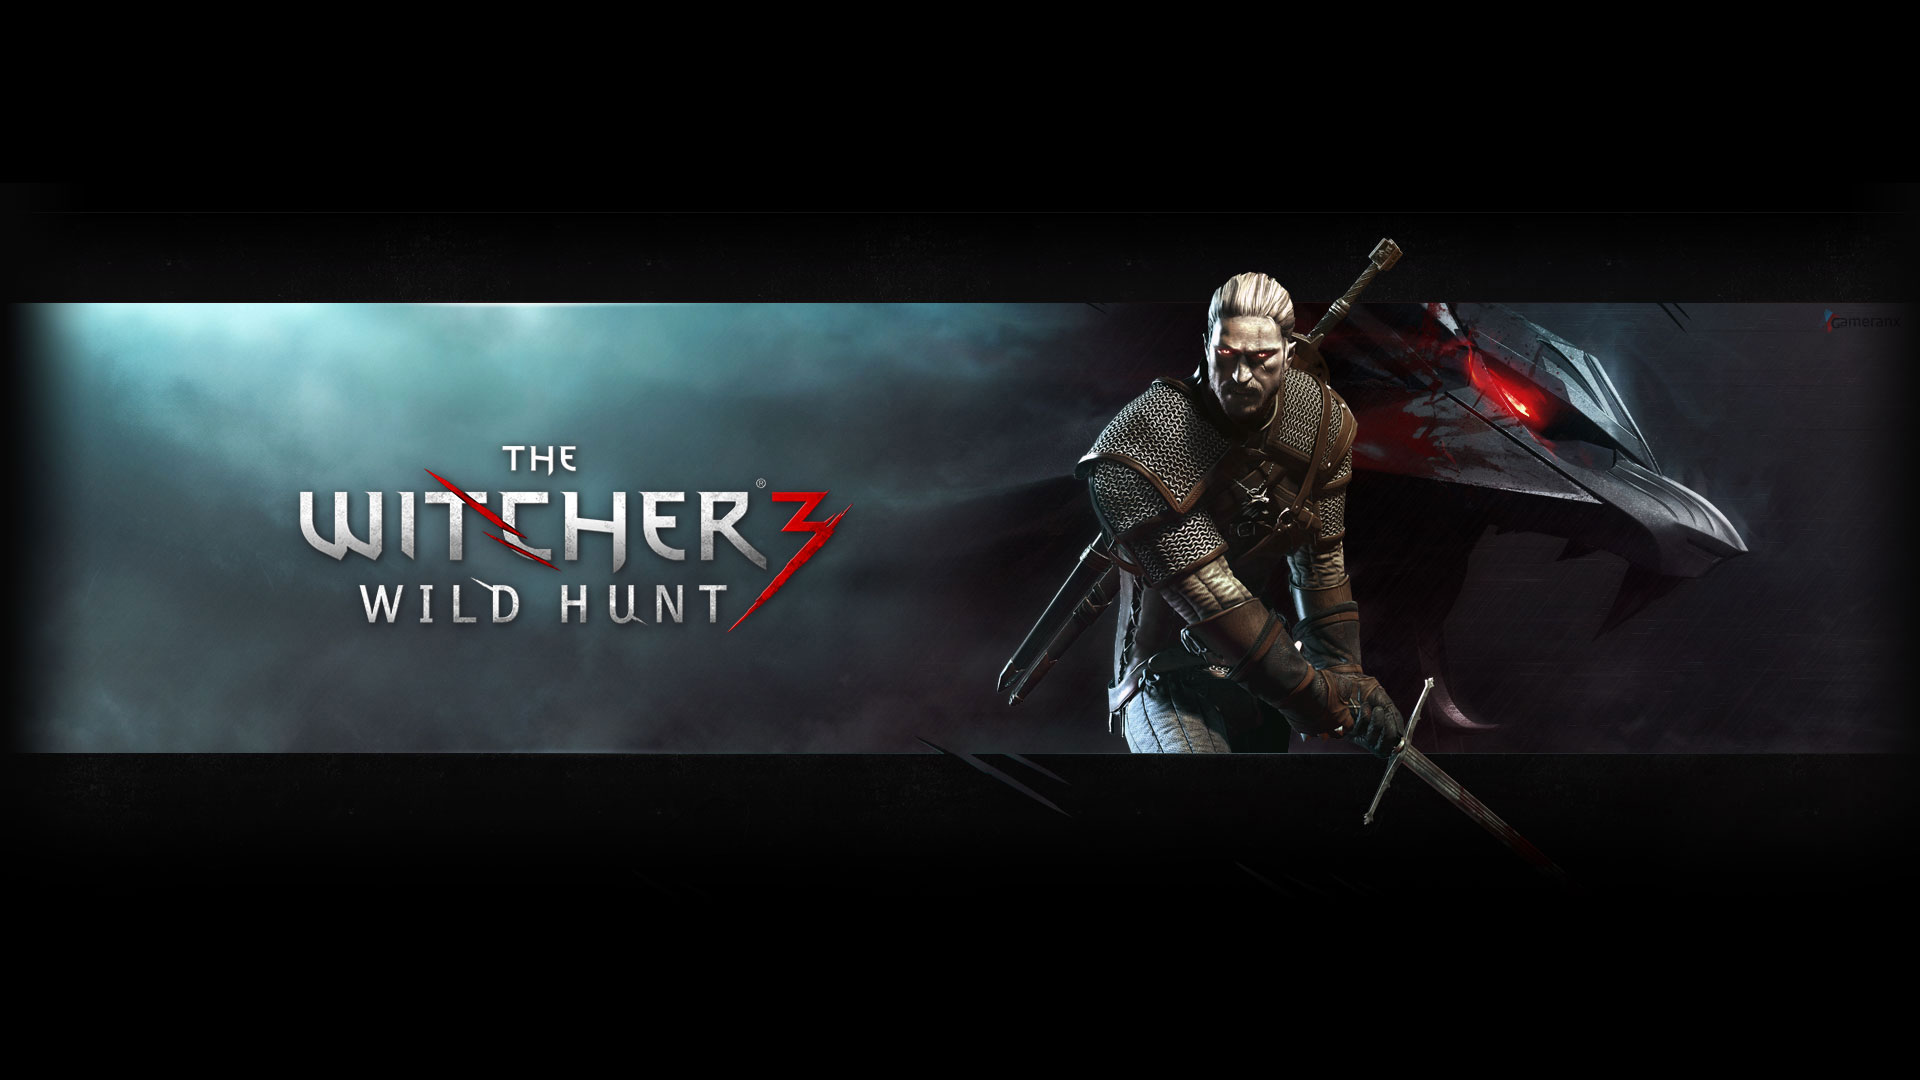 1920x1080px the witcher 3 wallpaper 1080p - wallpapersafari